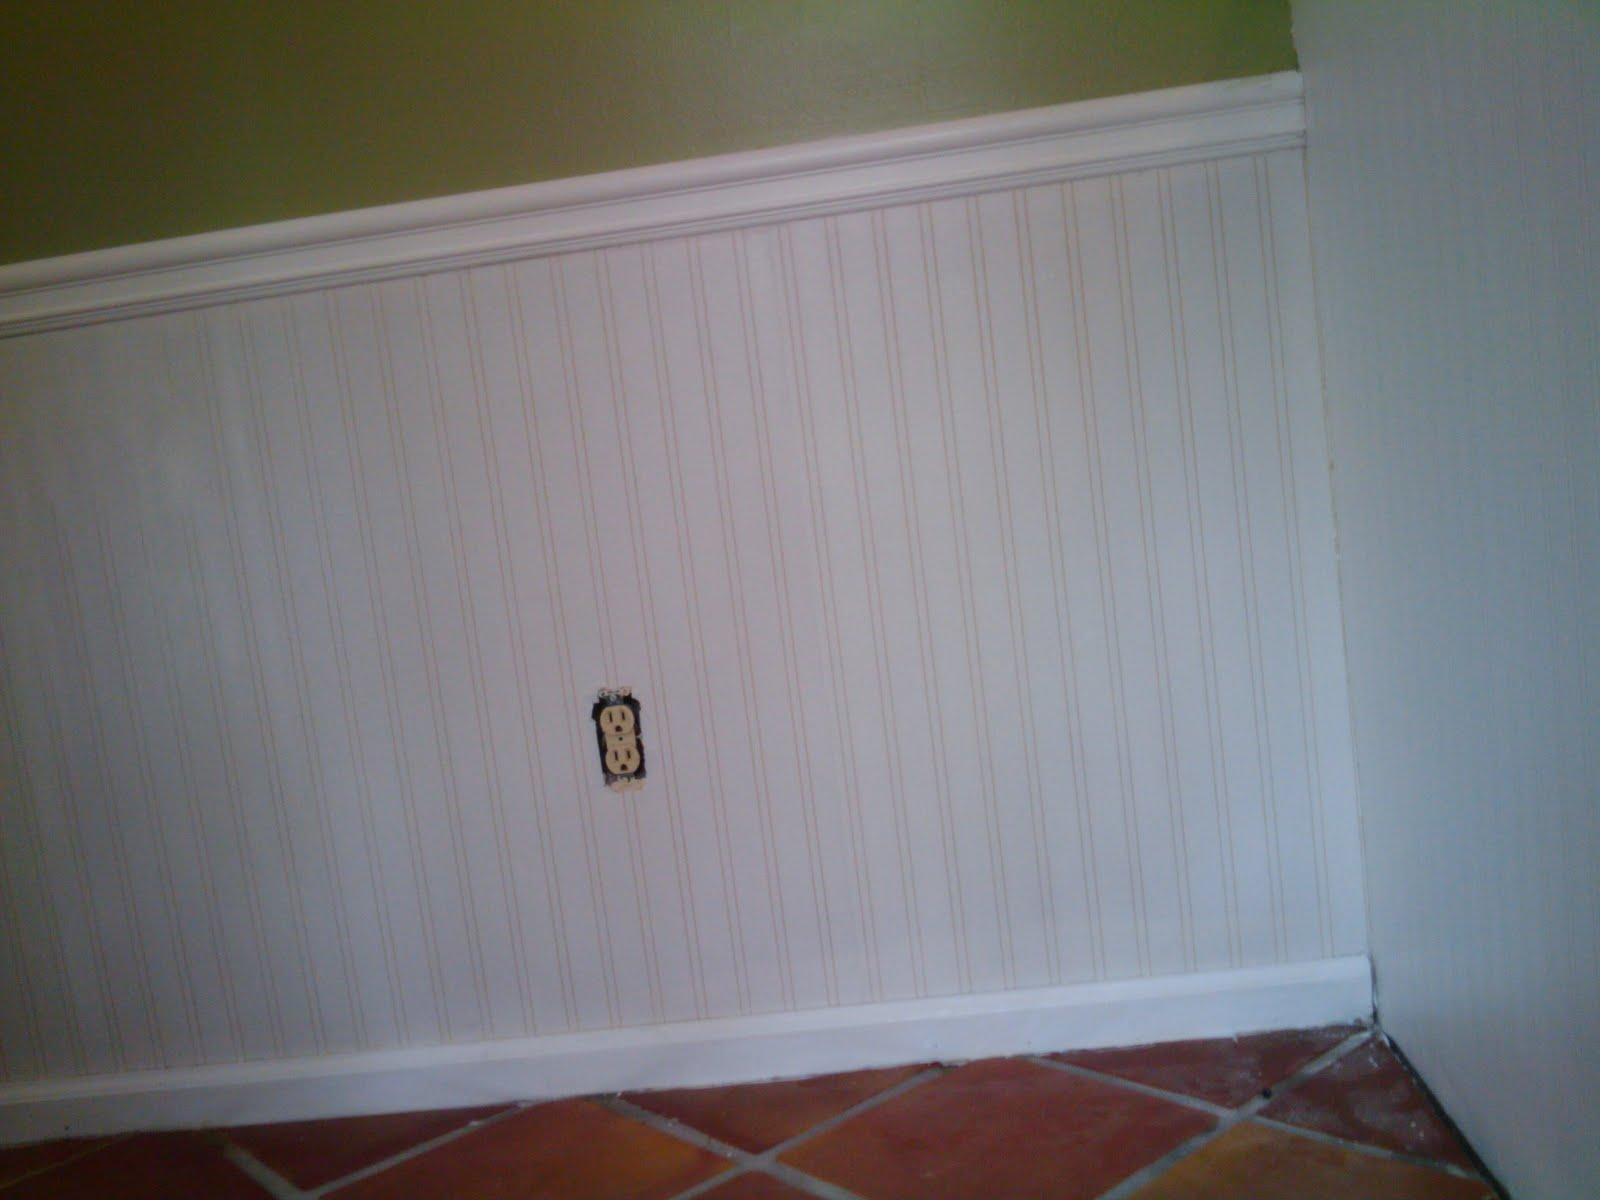 But this bead board is great The wall paper has a texture that is 1600x1200